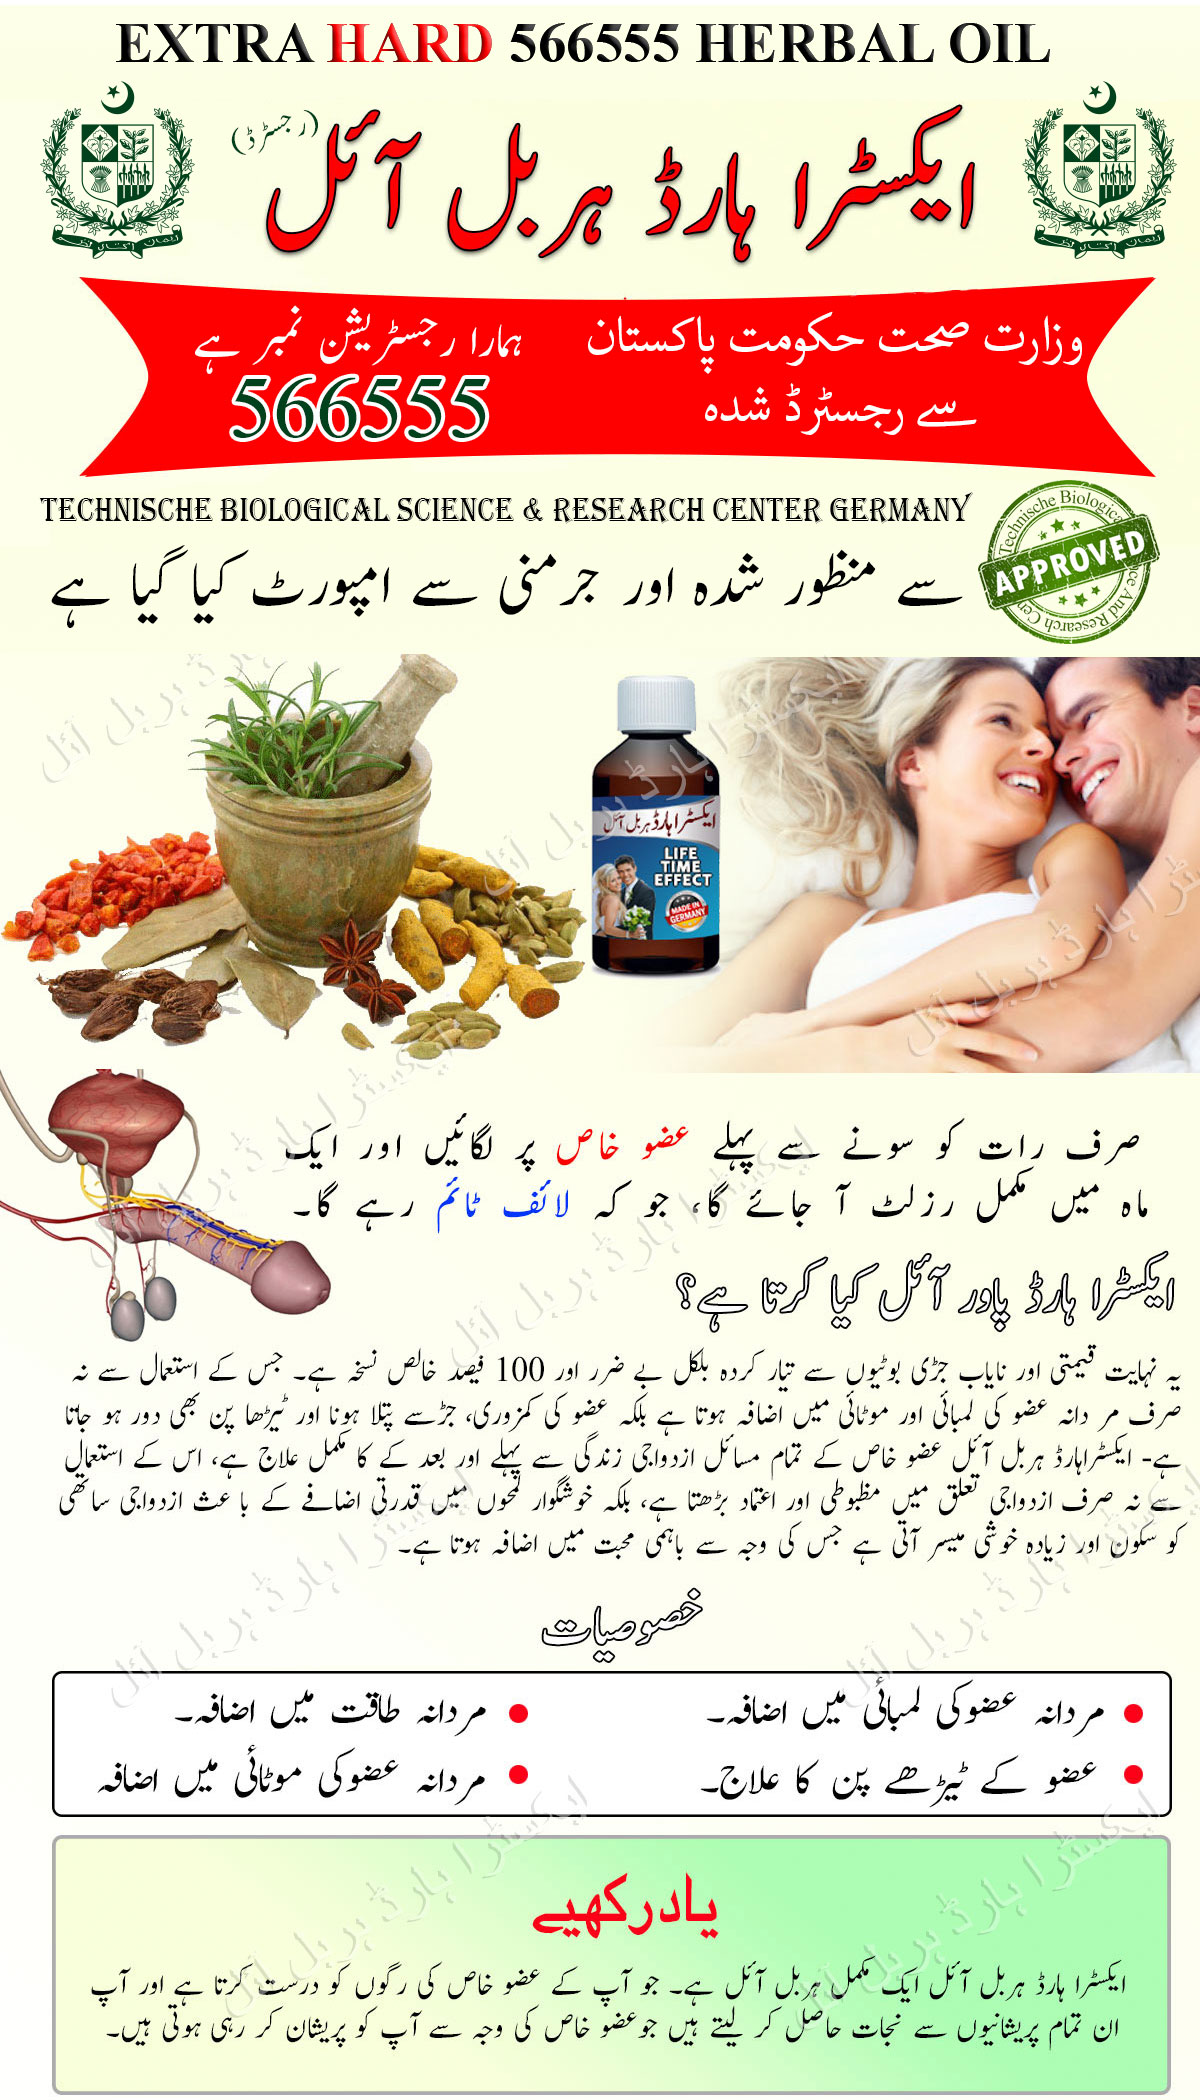 Extra hard herbal oil price in pakistan